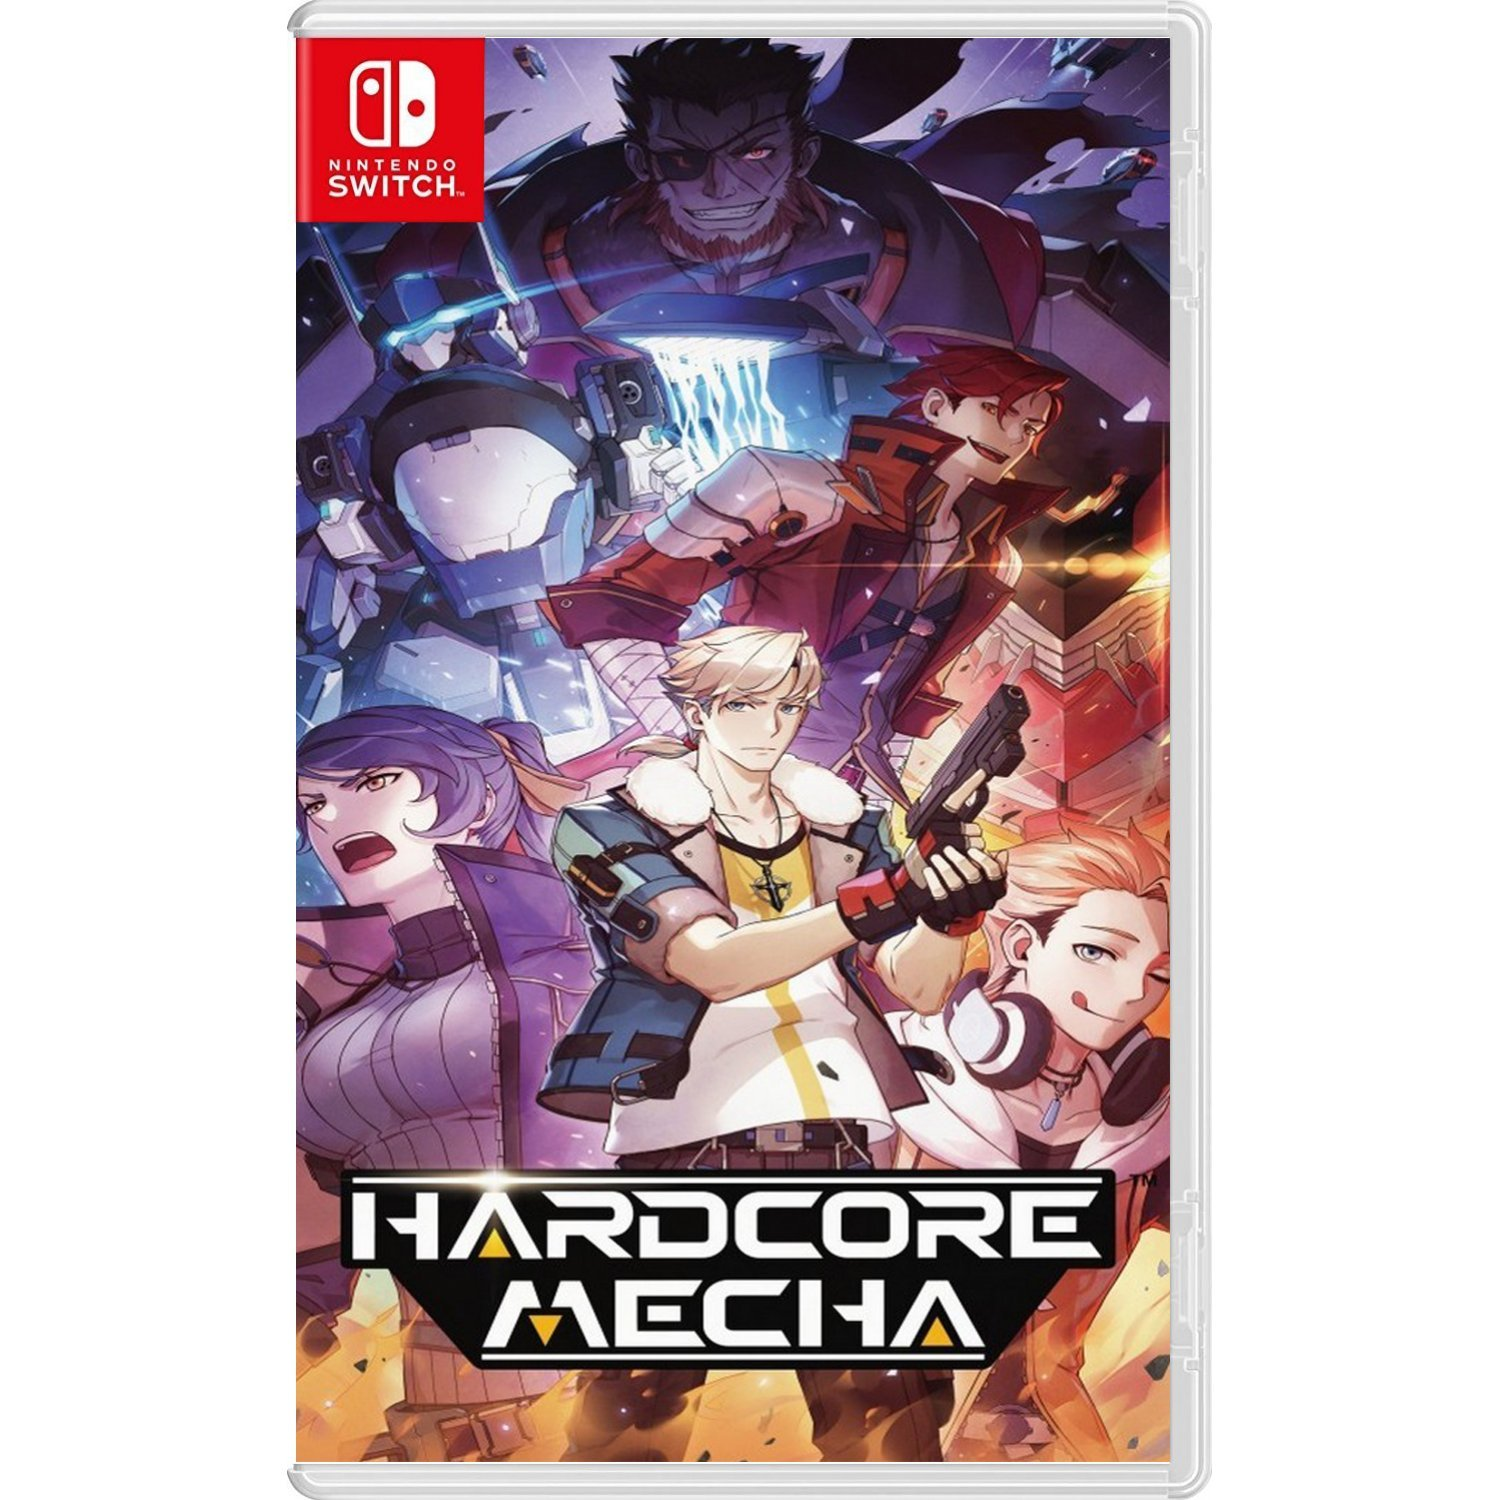 Nintendo Switch - The full set - Page 5 Hardcore-mecha-multilanguage-631969.7